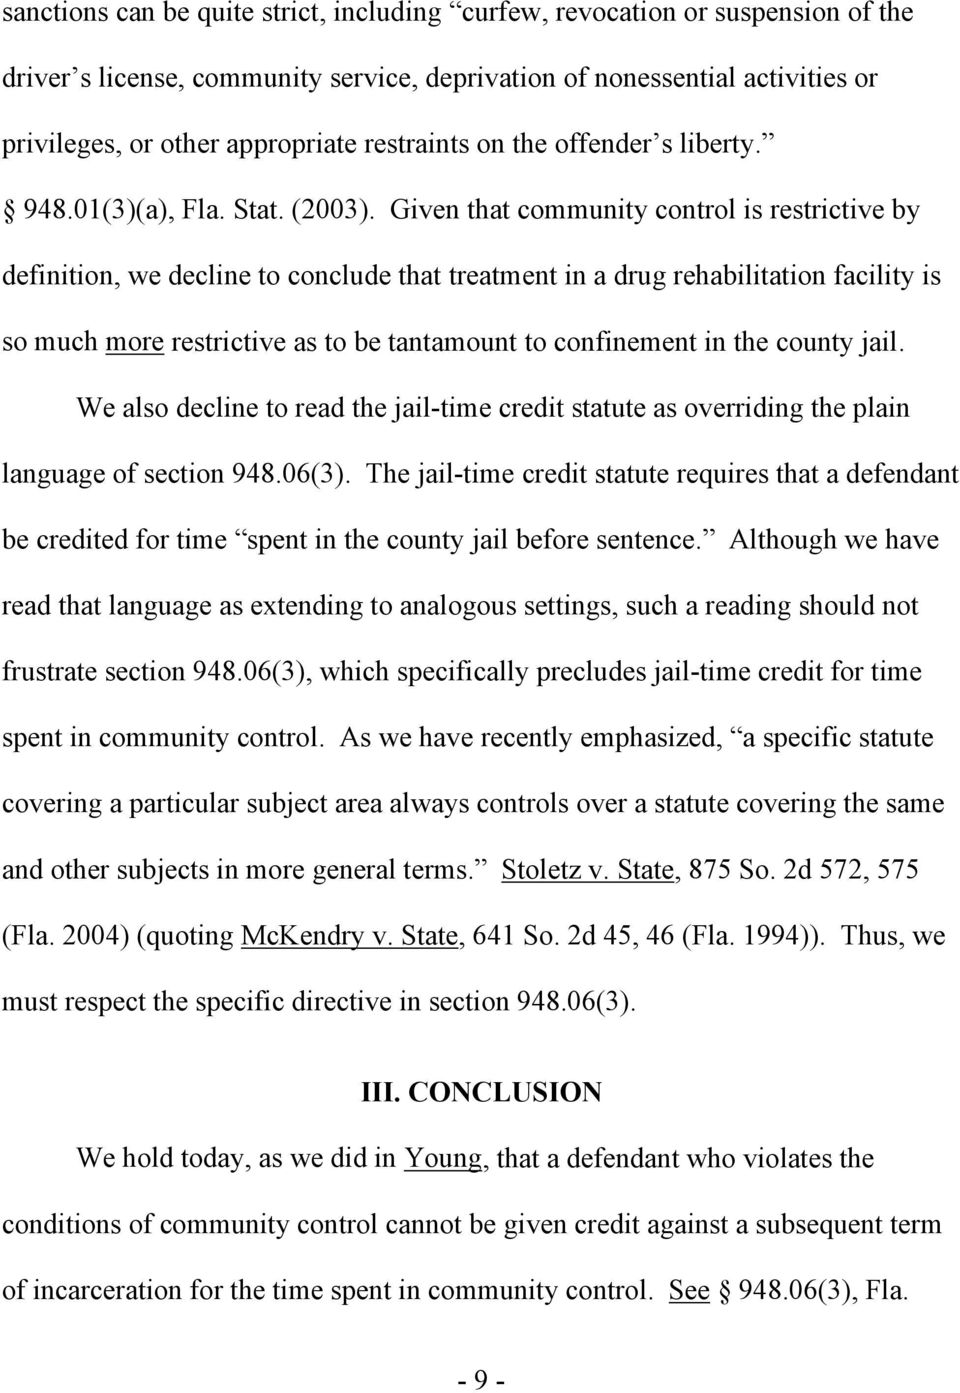 Given that community control is restrictive by definition, we decline to conclude that treatment in a drug rehabilitation facility is so much more restrictive as to be tantamount to confinement in